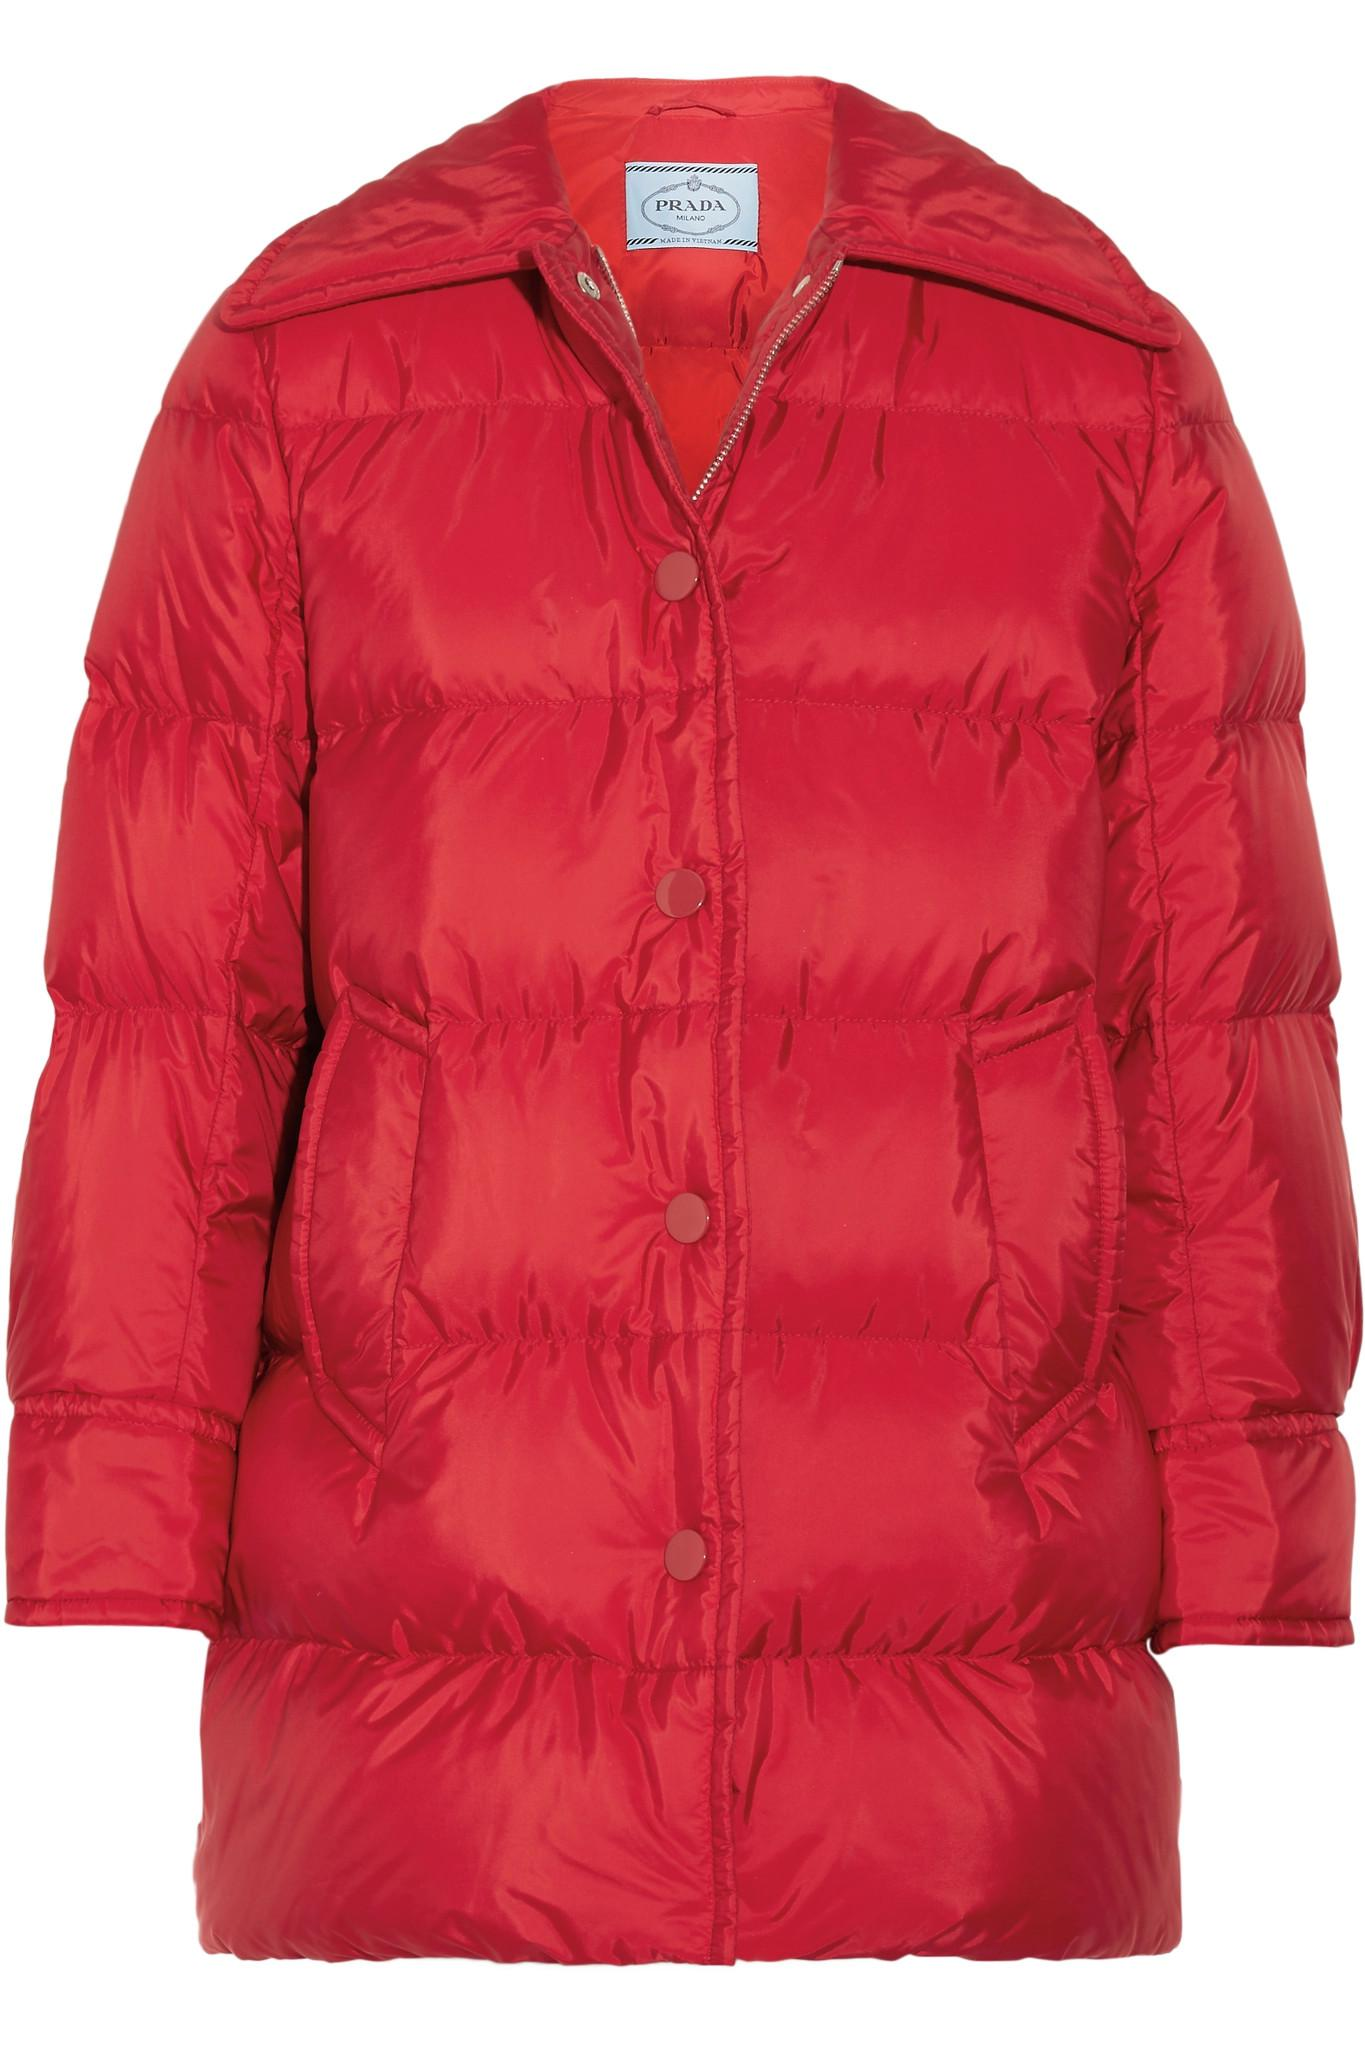 Prada. Women's Red Quilted Shell Down Jacket